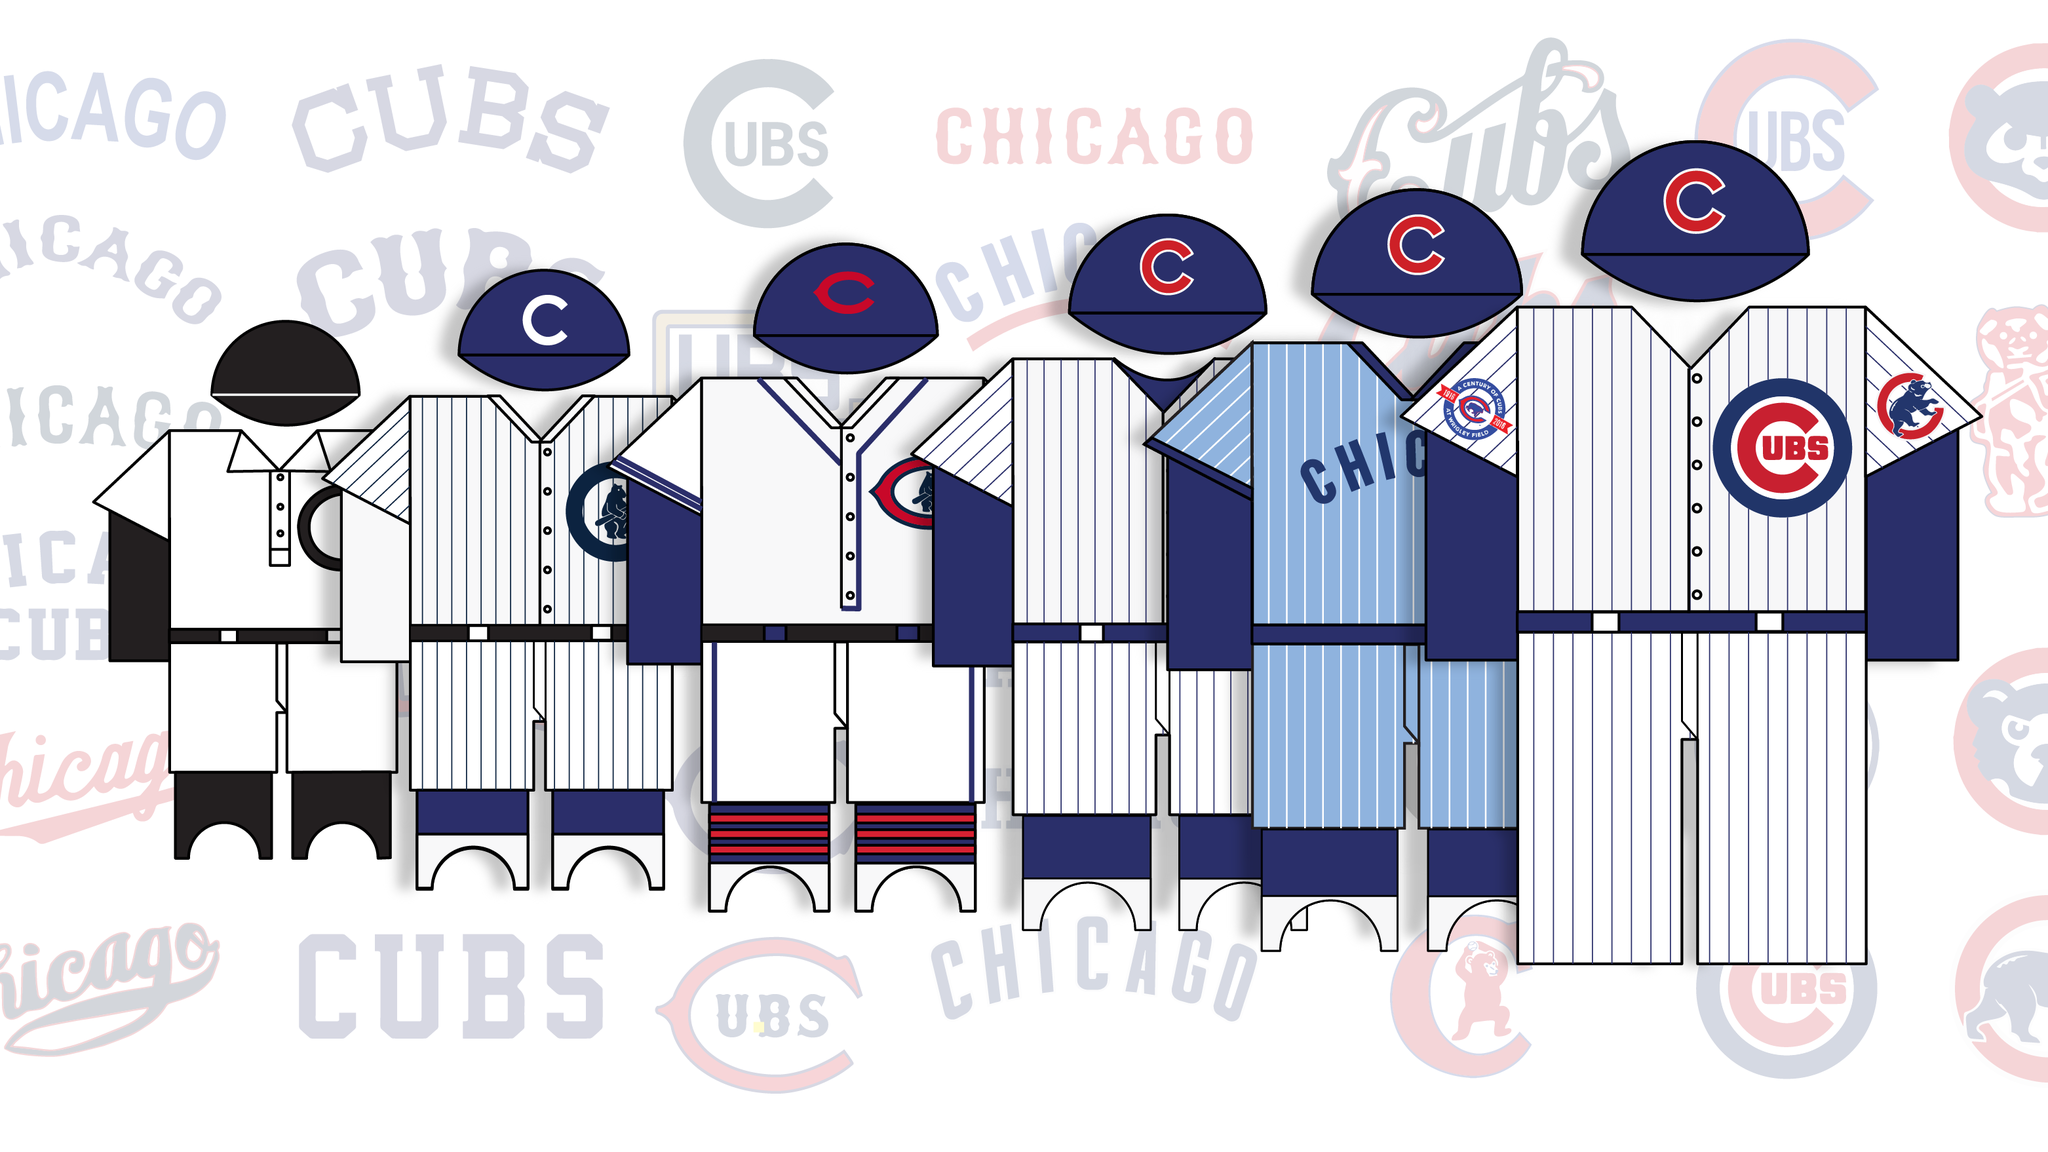 beb62dd809f 113 years of Cubs uniforms